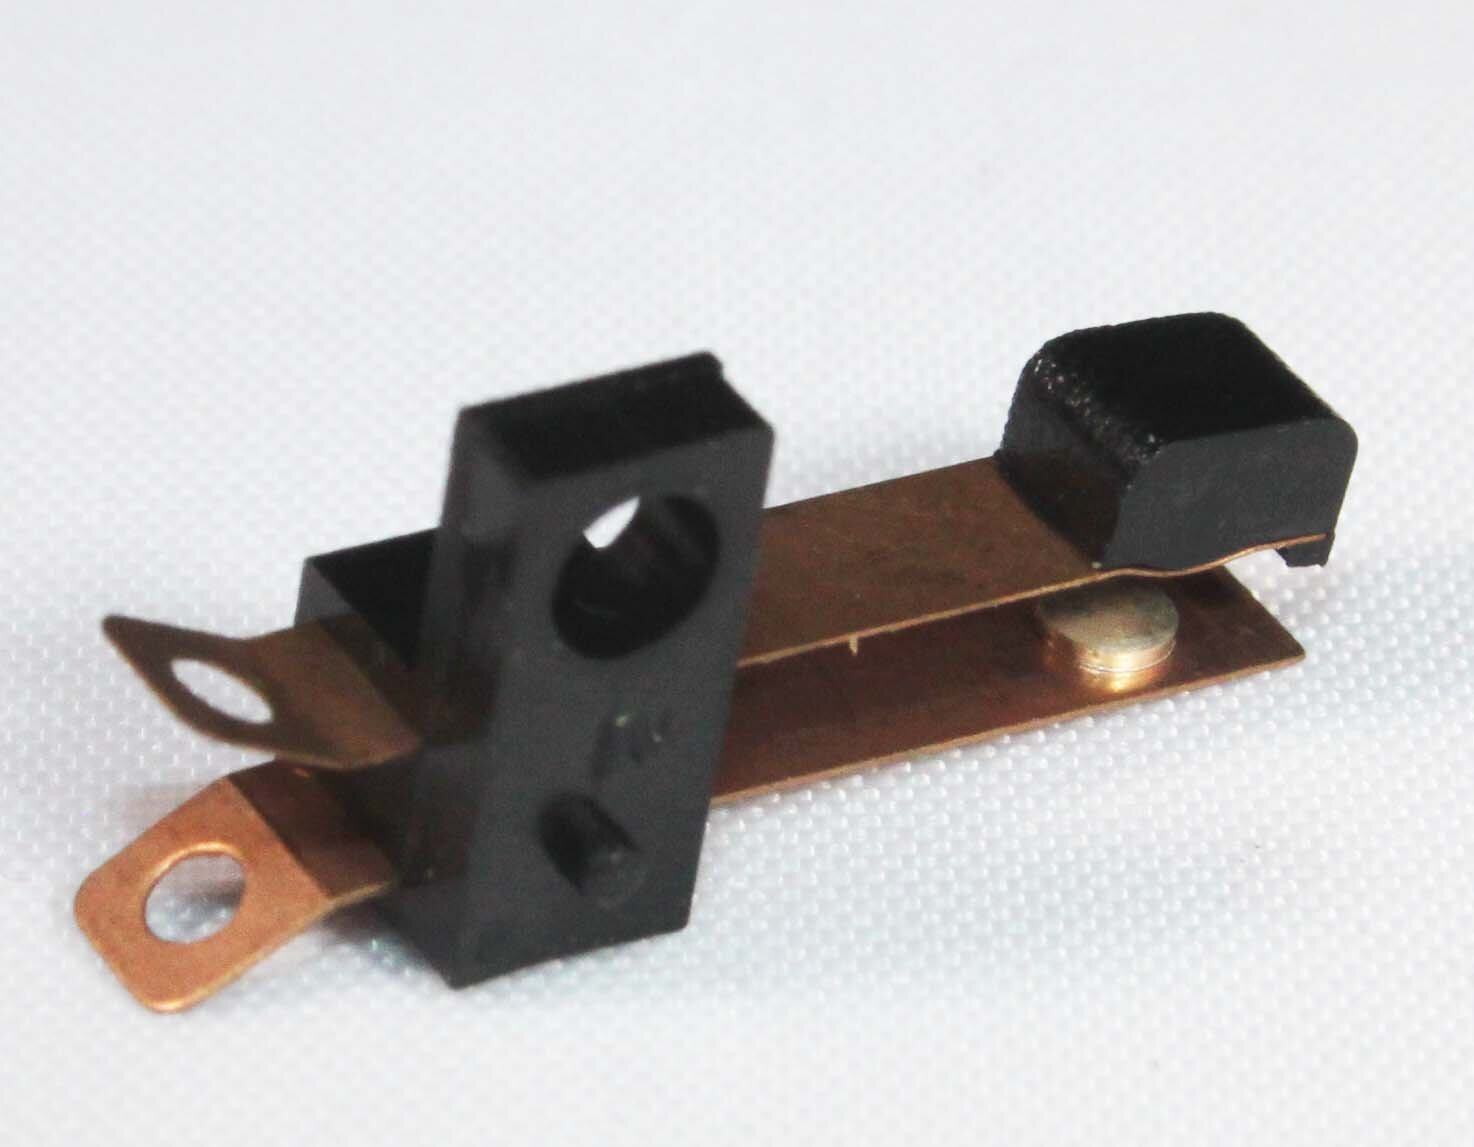 LEAF SWITCH - SMALL - Code: LEAFSS50V 0.5Amp; Operating Force: 100g (max)Price: $0.15